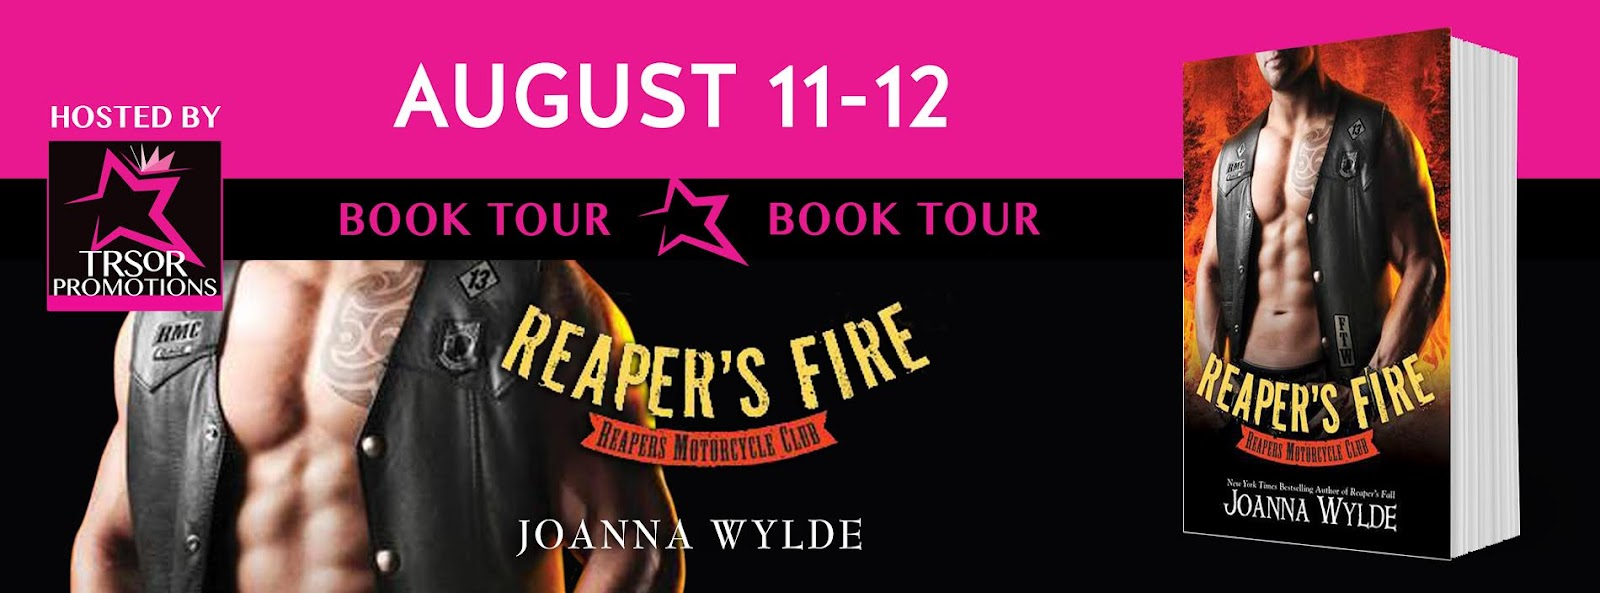 reaper's fire book tour.jpg